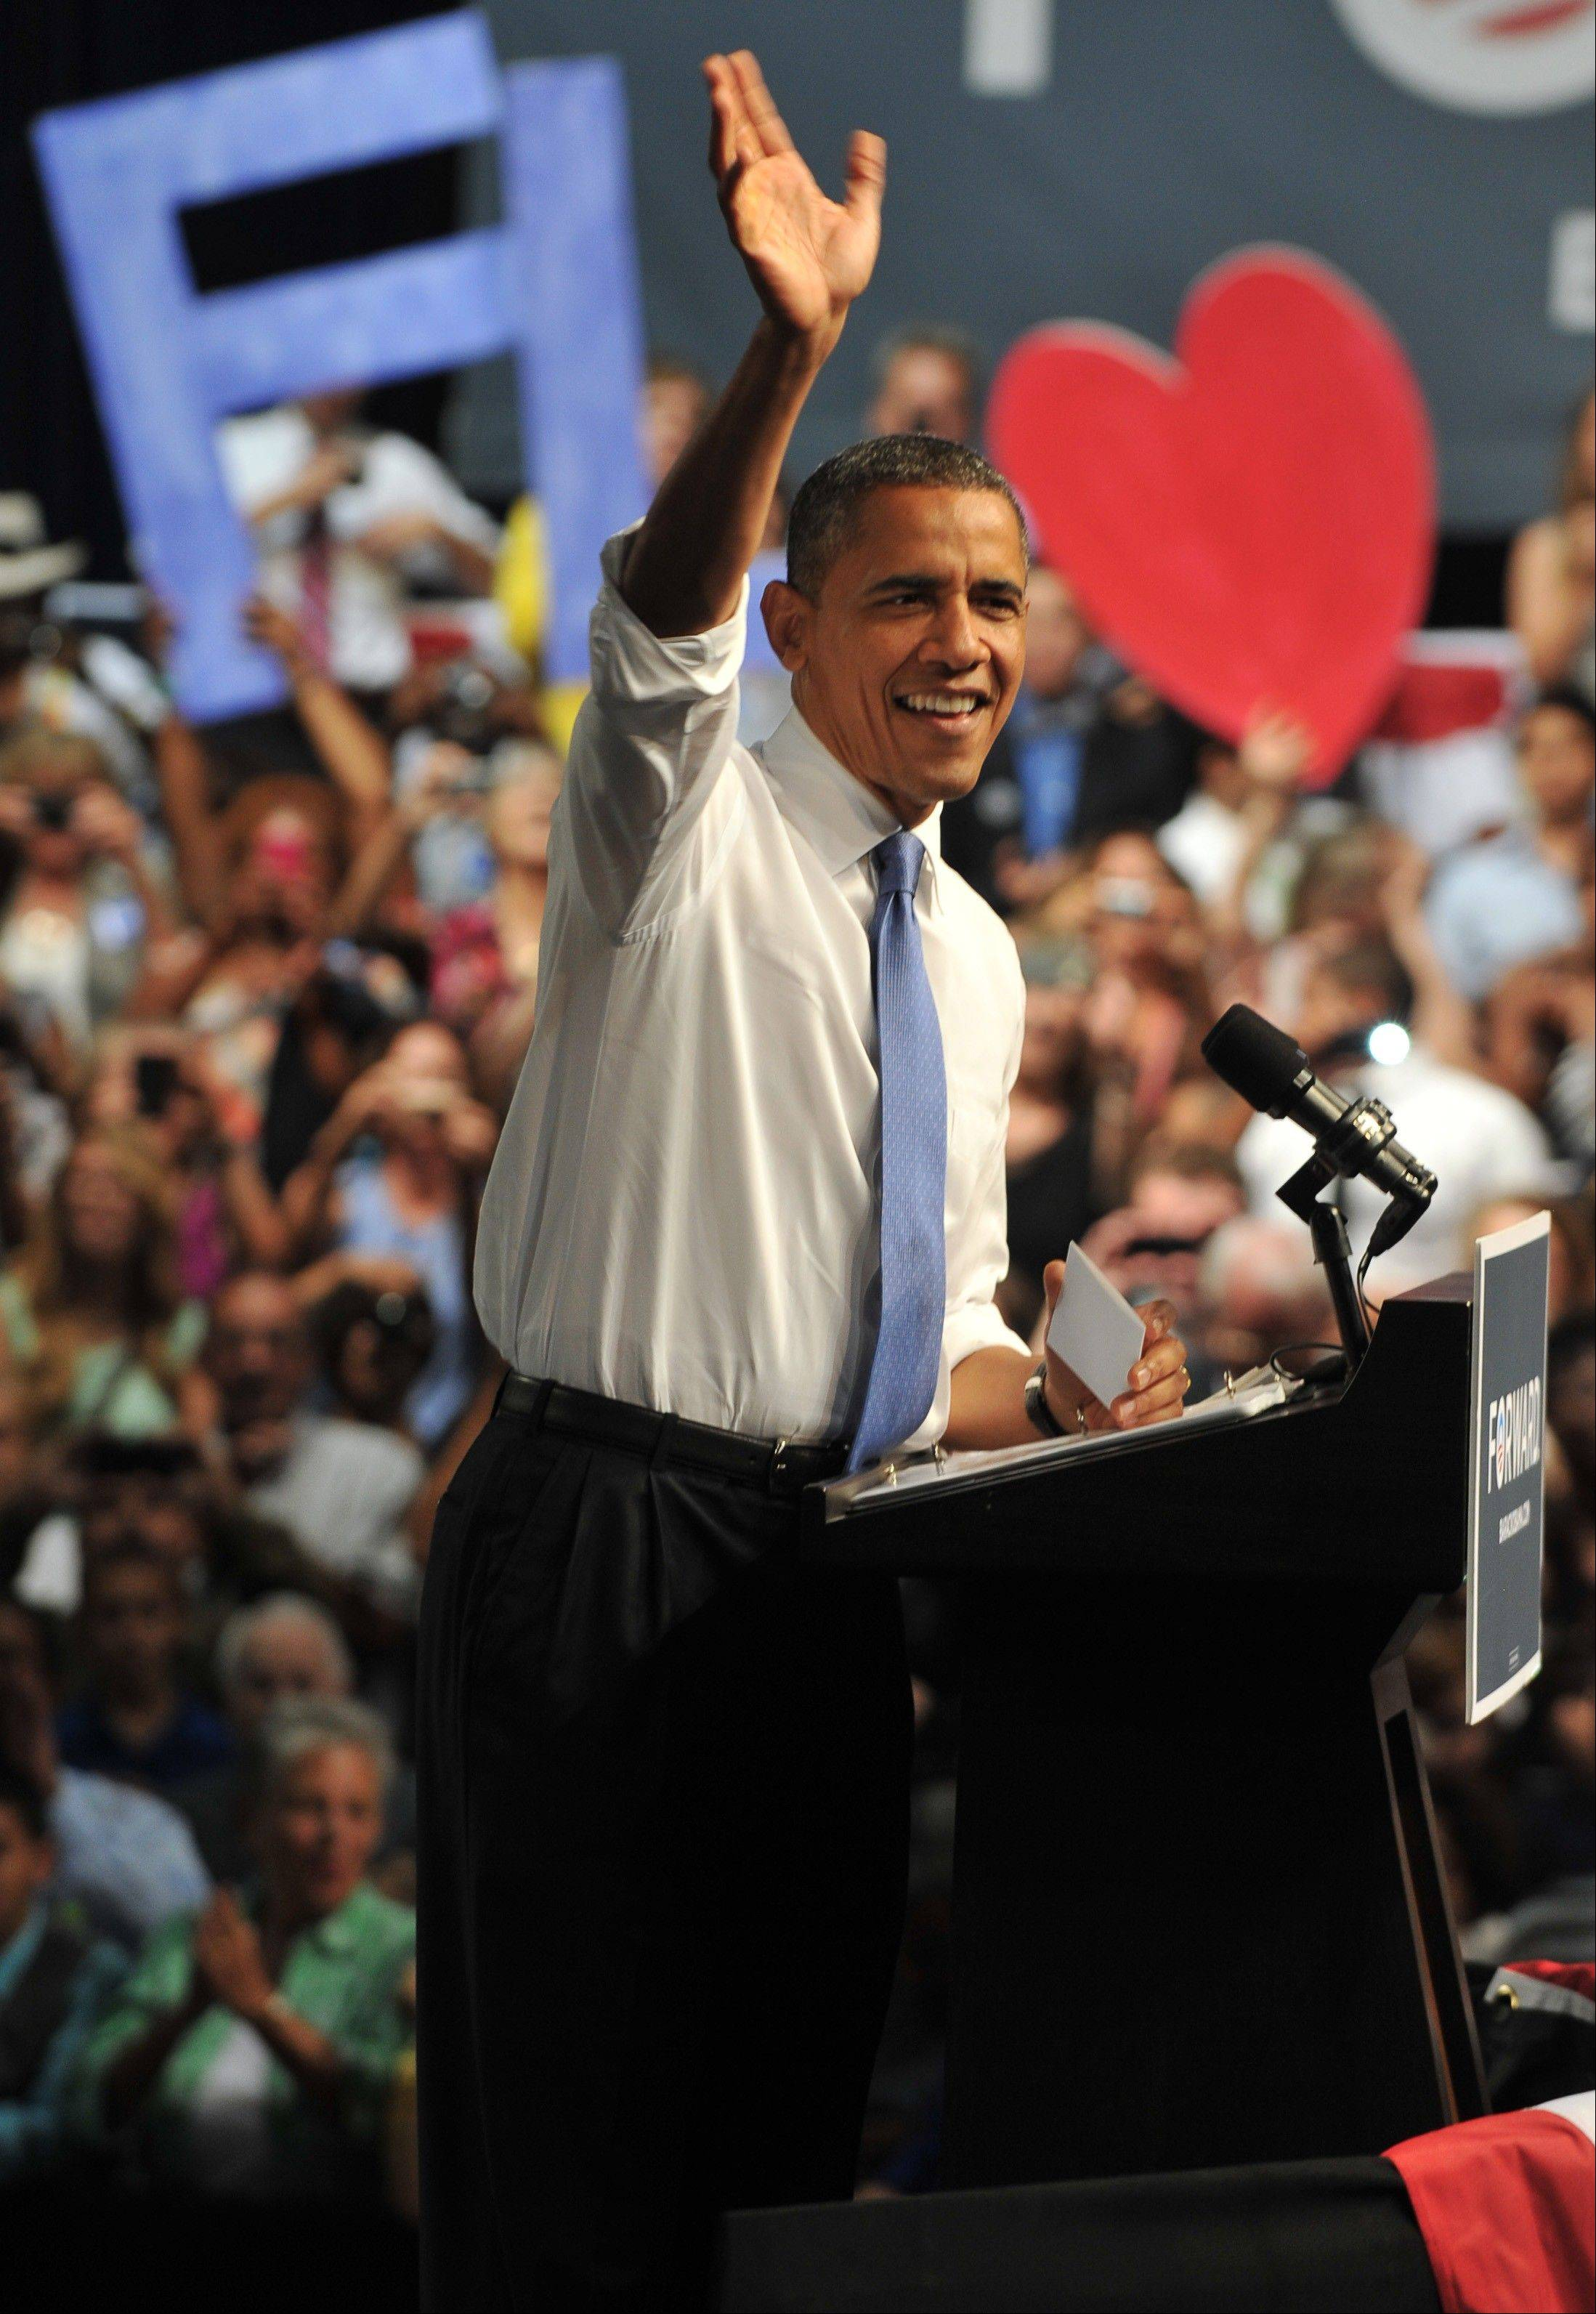 President Barack Obama opened a two-day trek through Florida by making appeals to the retirees, Hispanics and middle-income voters who are key to winning the nation�s most populous swing state.